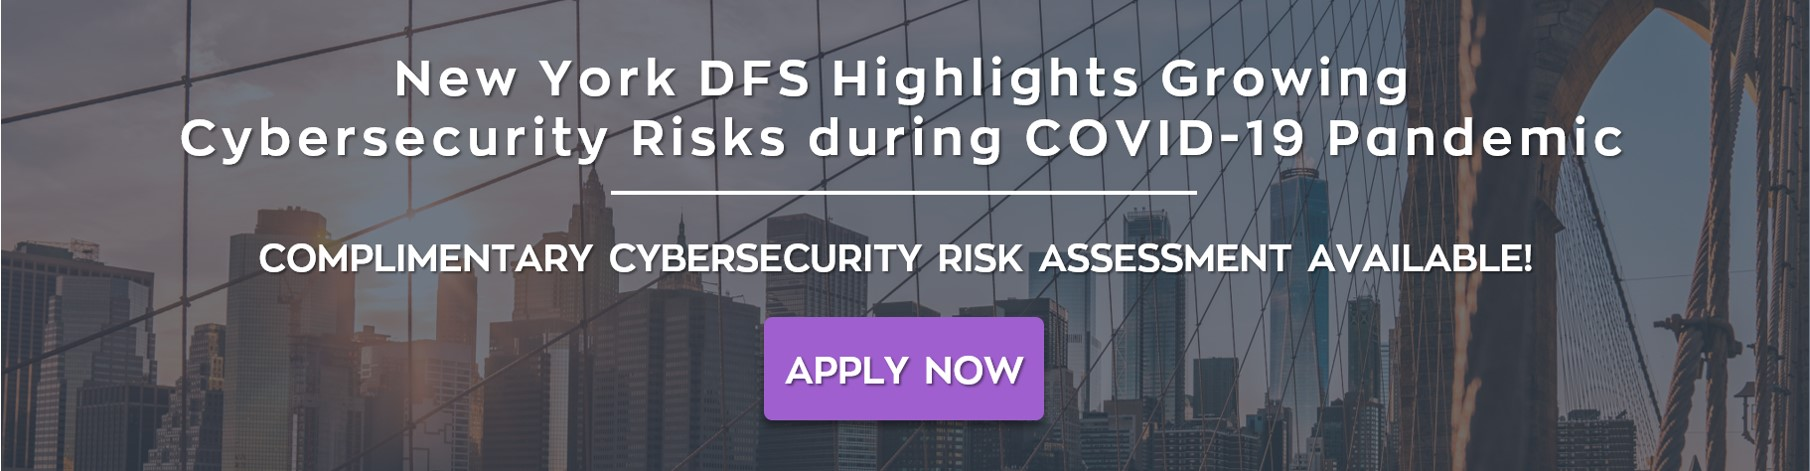 NYCRR Cybersecurity Risk Assessment COVID 19